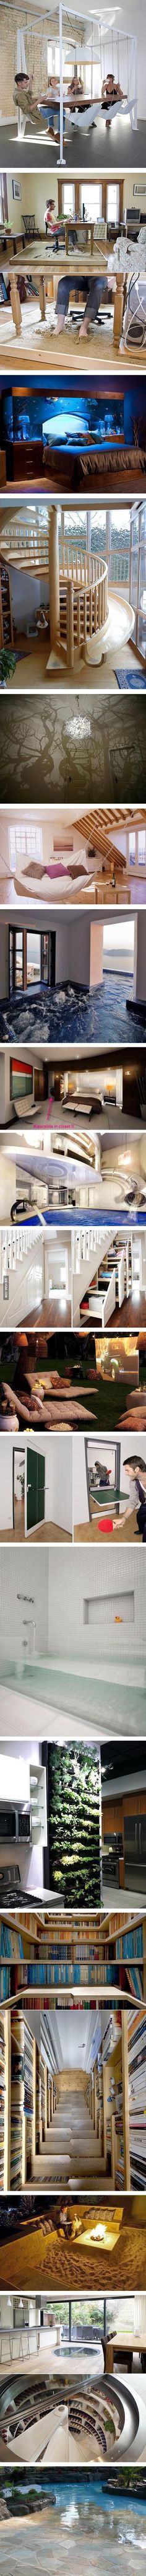 18 absolutely AMAZING House Ideas!